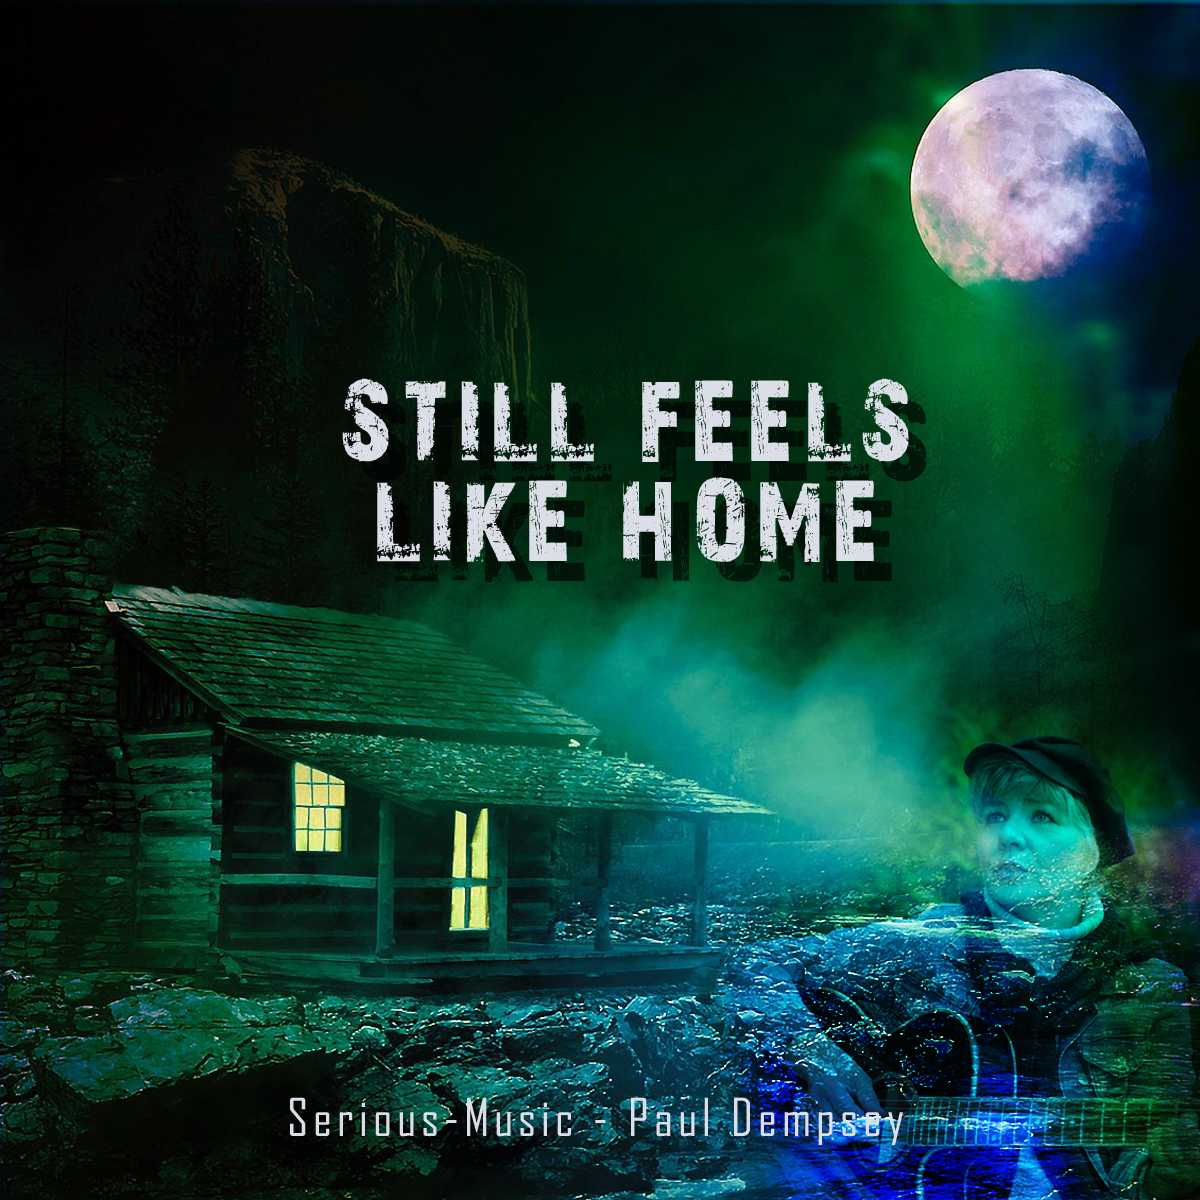 Still Feels Like Home feat. Paul Dempsey - Album TRUTH